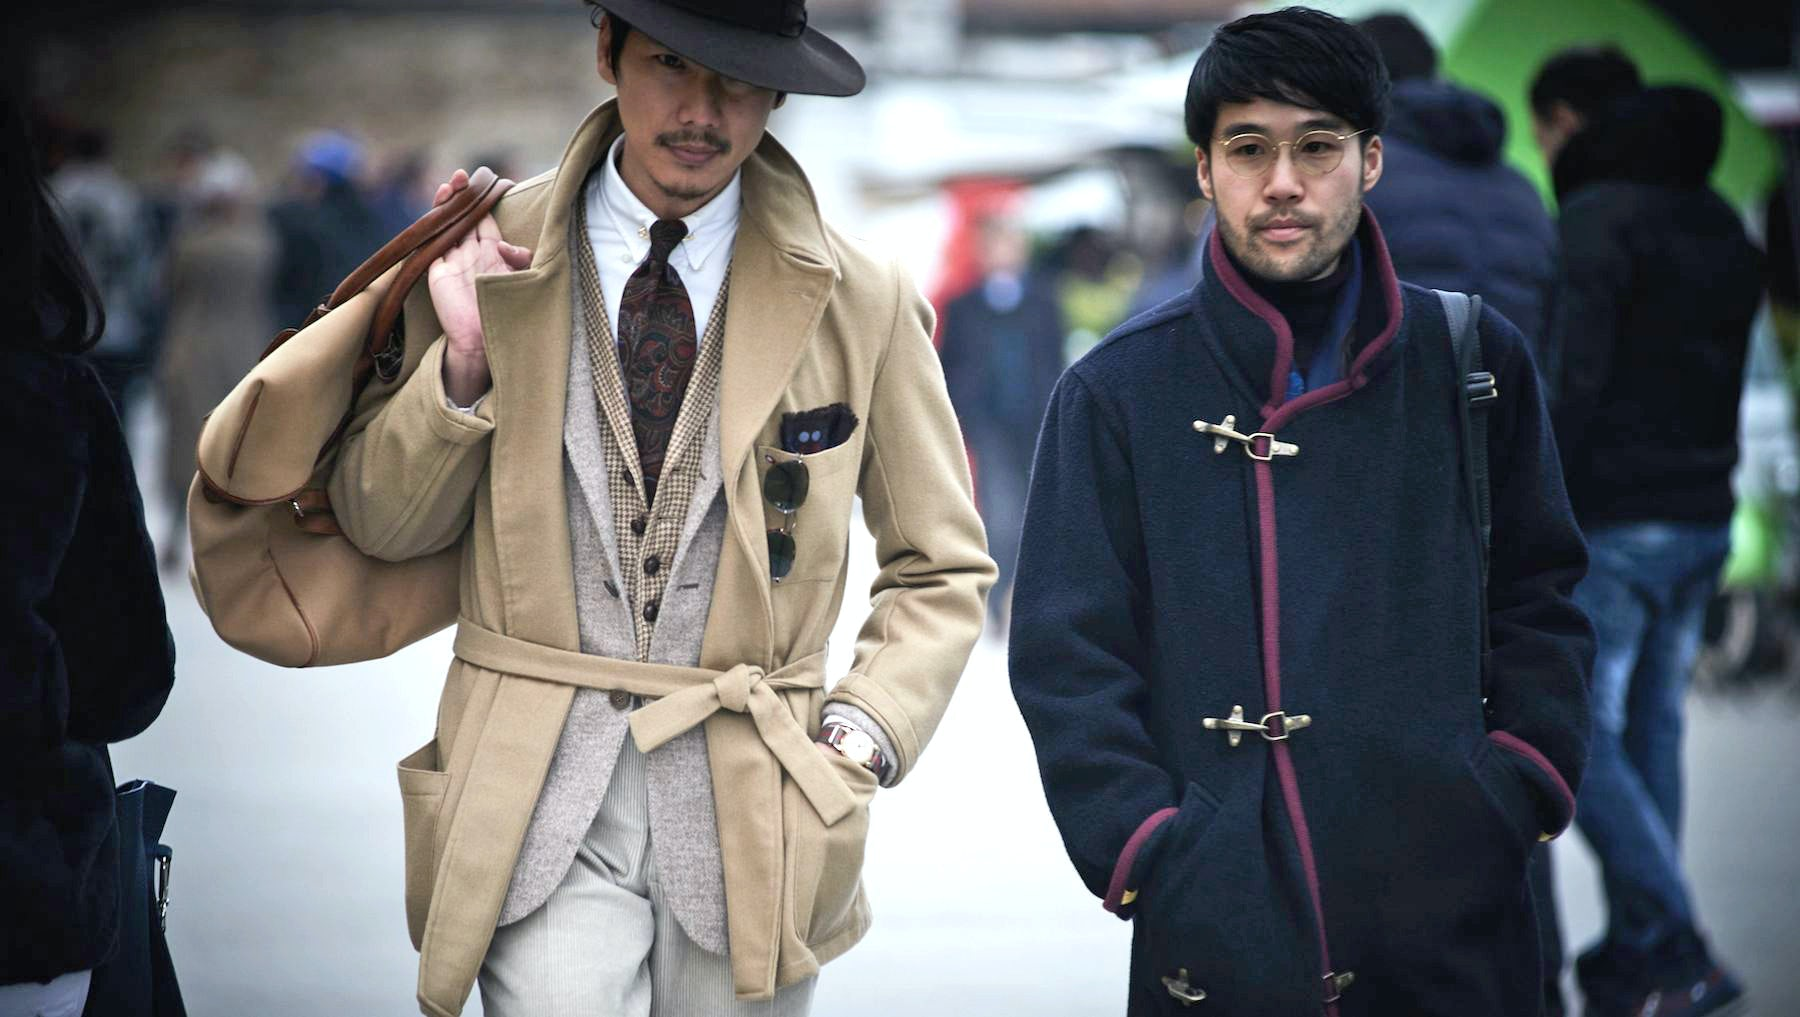 Attendees of Pitti Uomo 91  Source: Courtesy